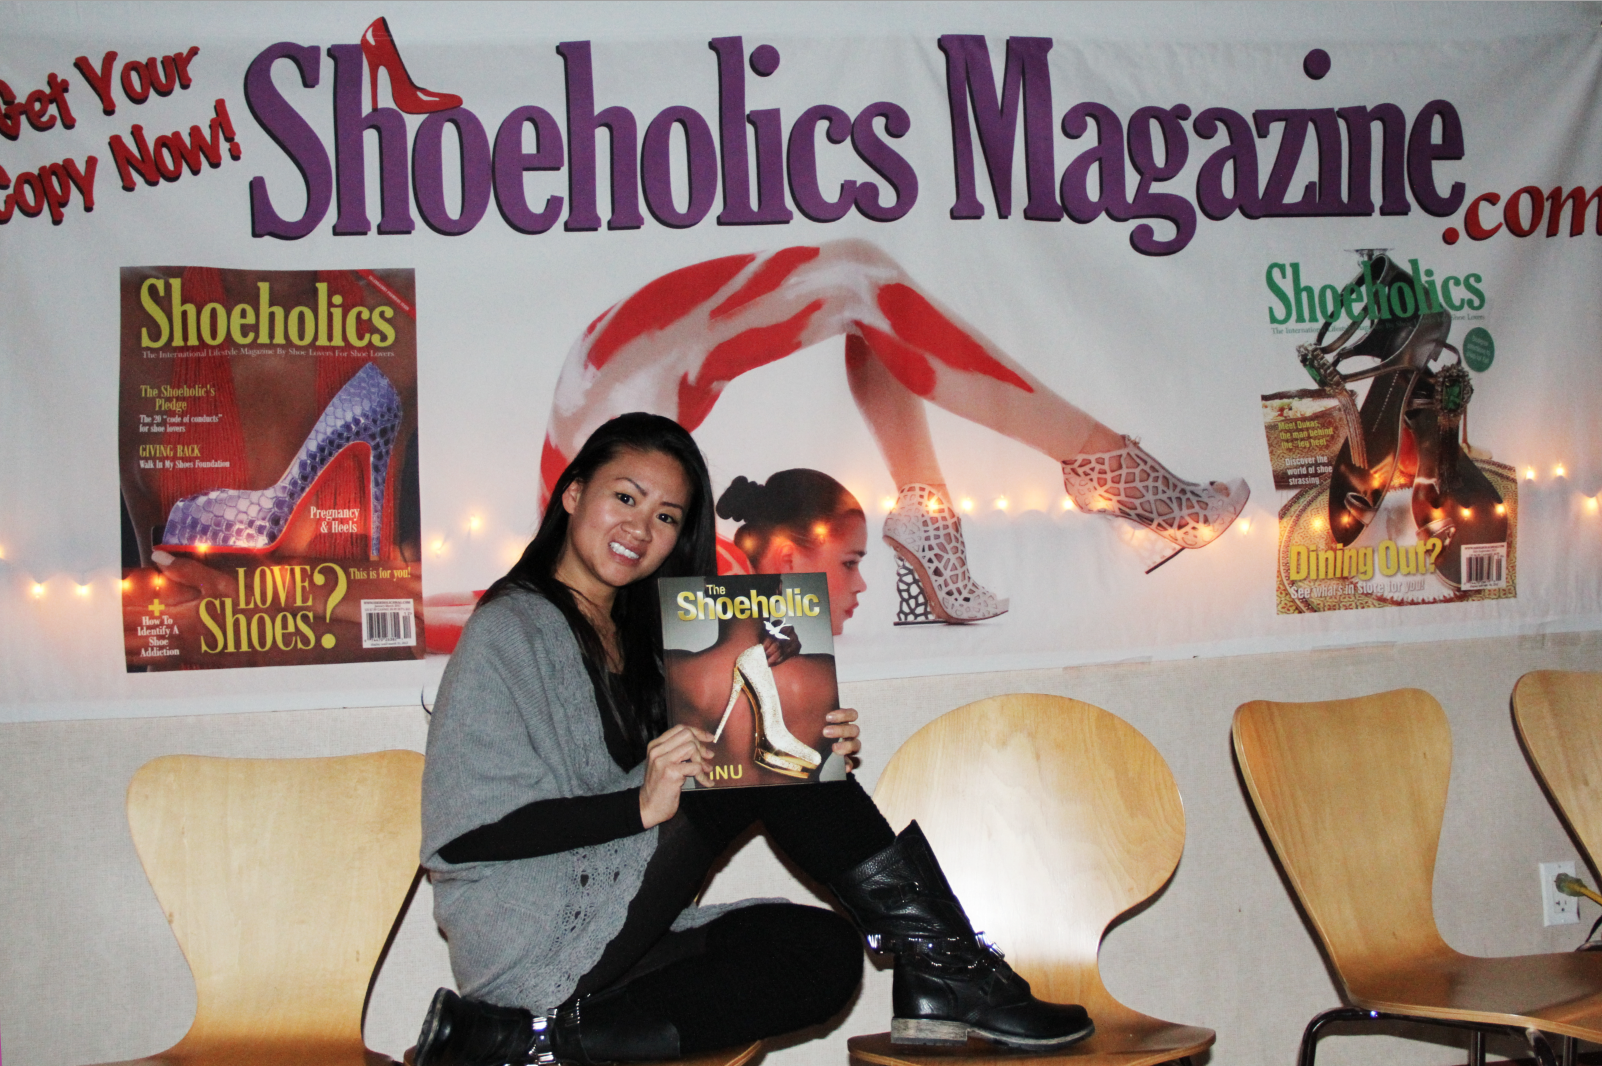 Joyce Ng with one of her winning prizes at the event. She scored a copy of The Shoeholic hardcover book!